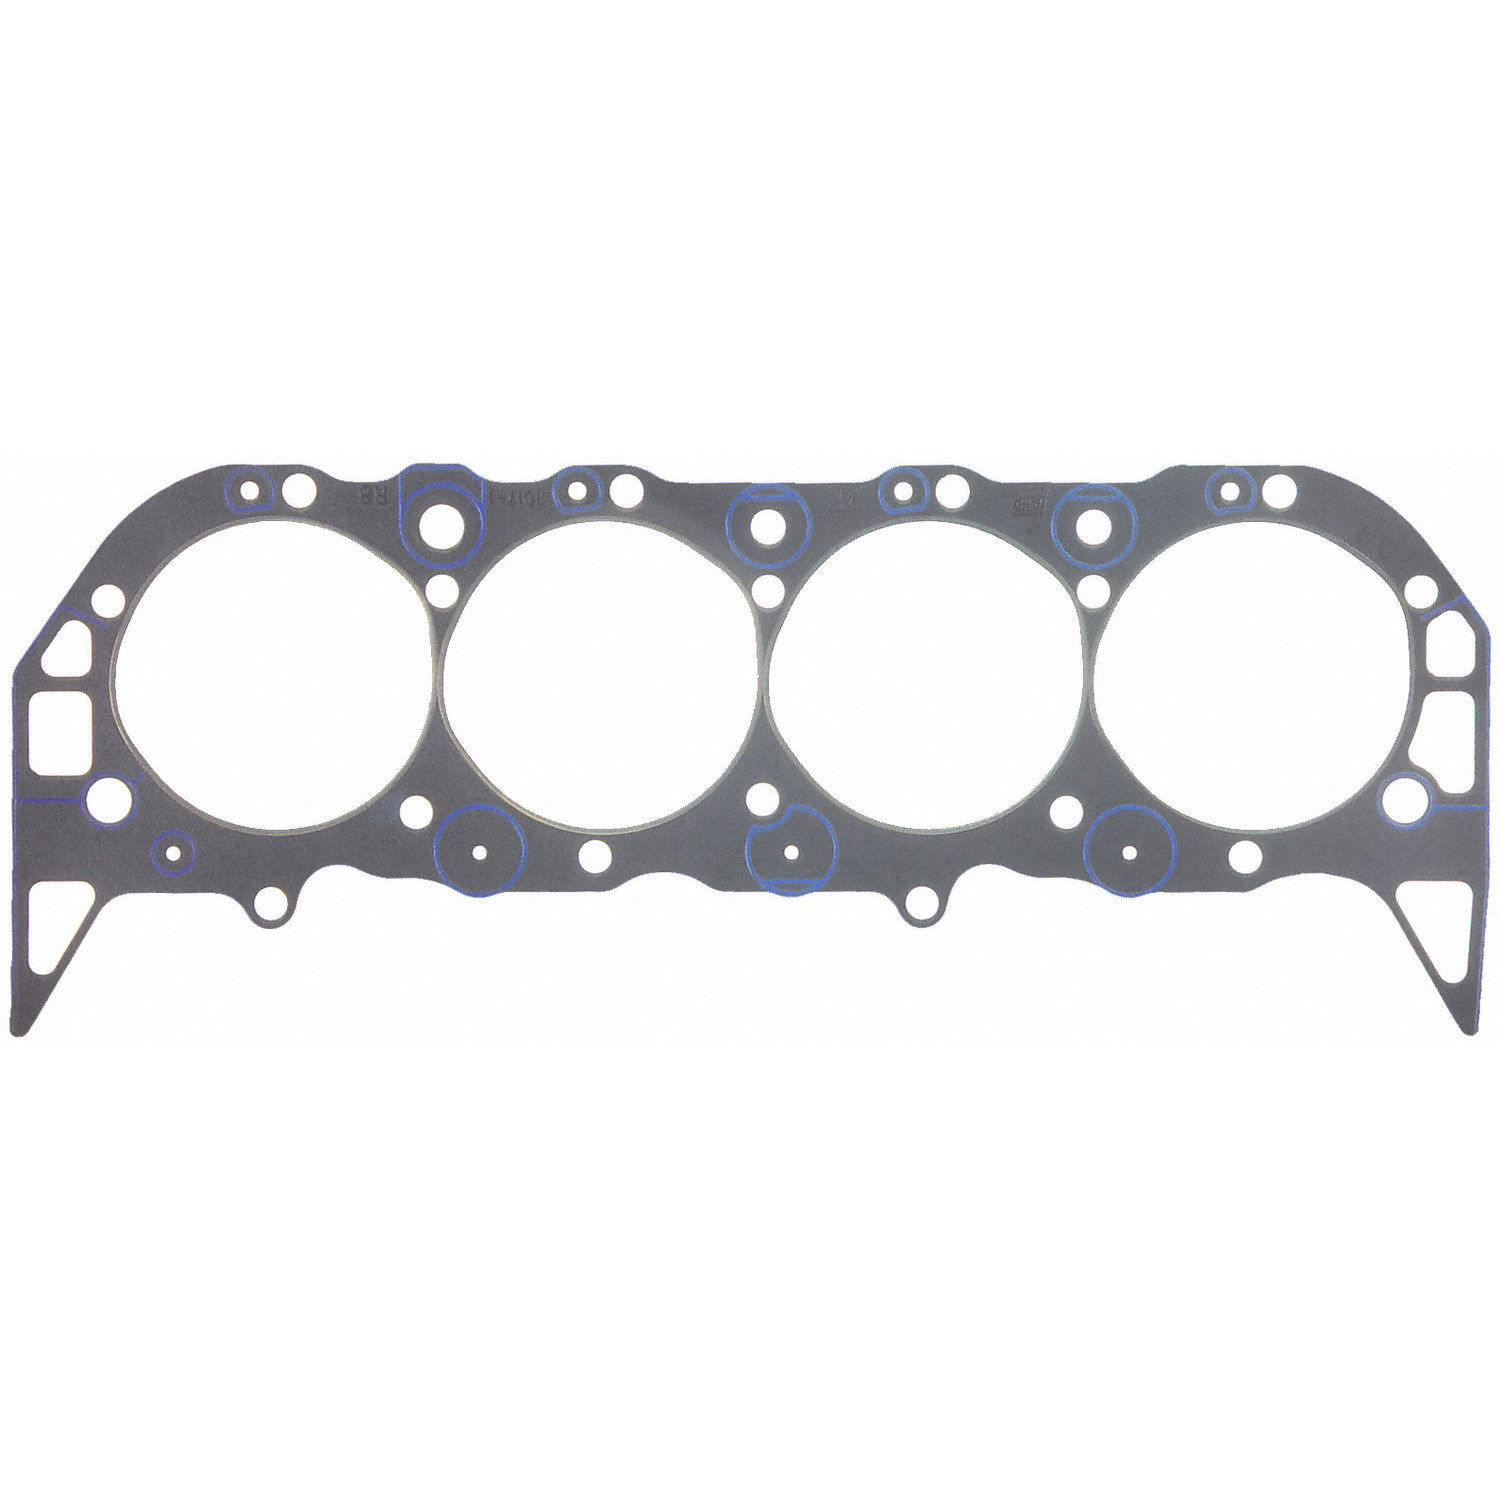 1143 Felpro Performace gasket new